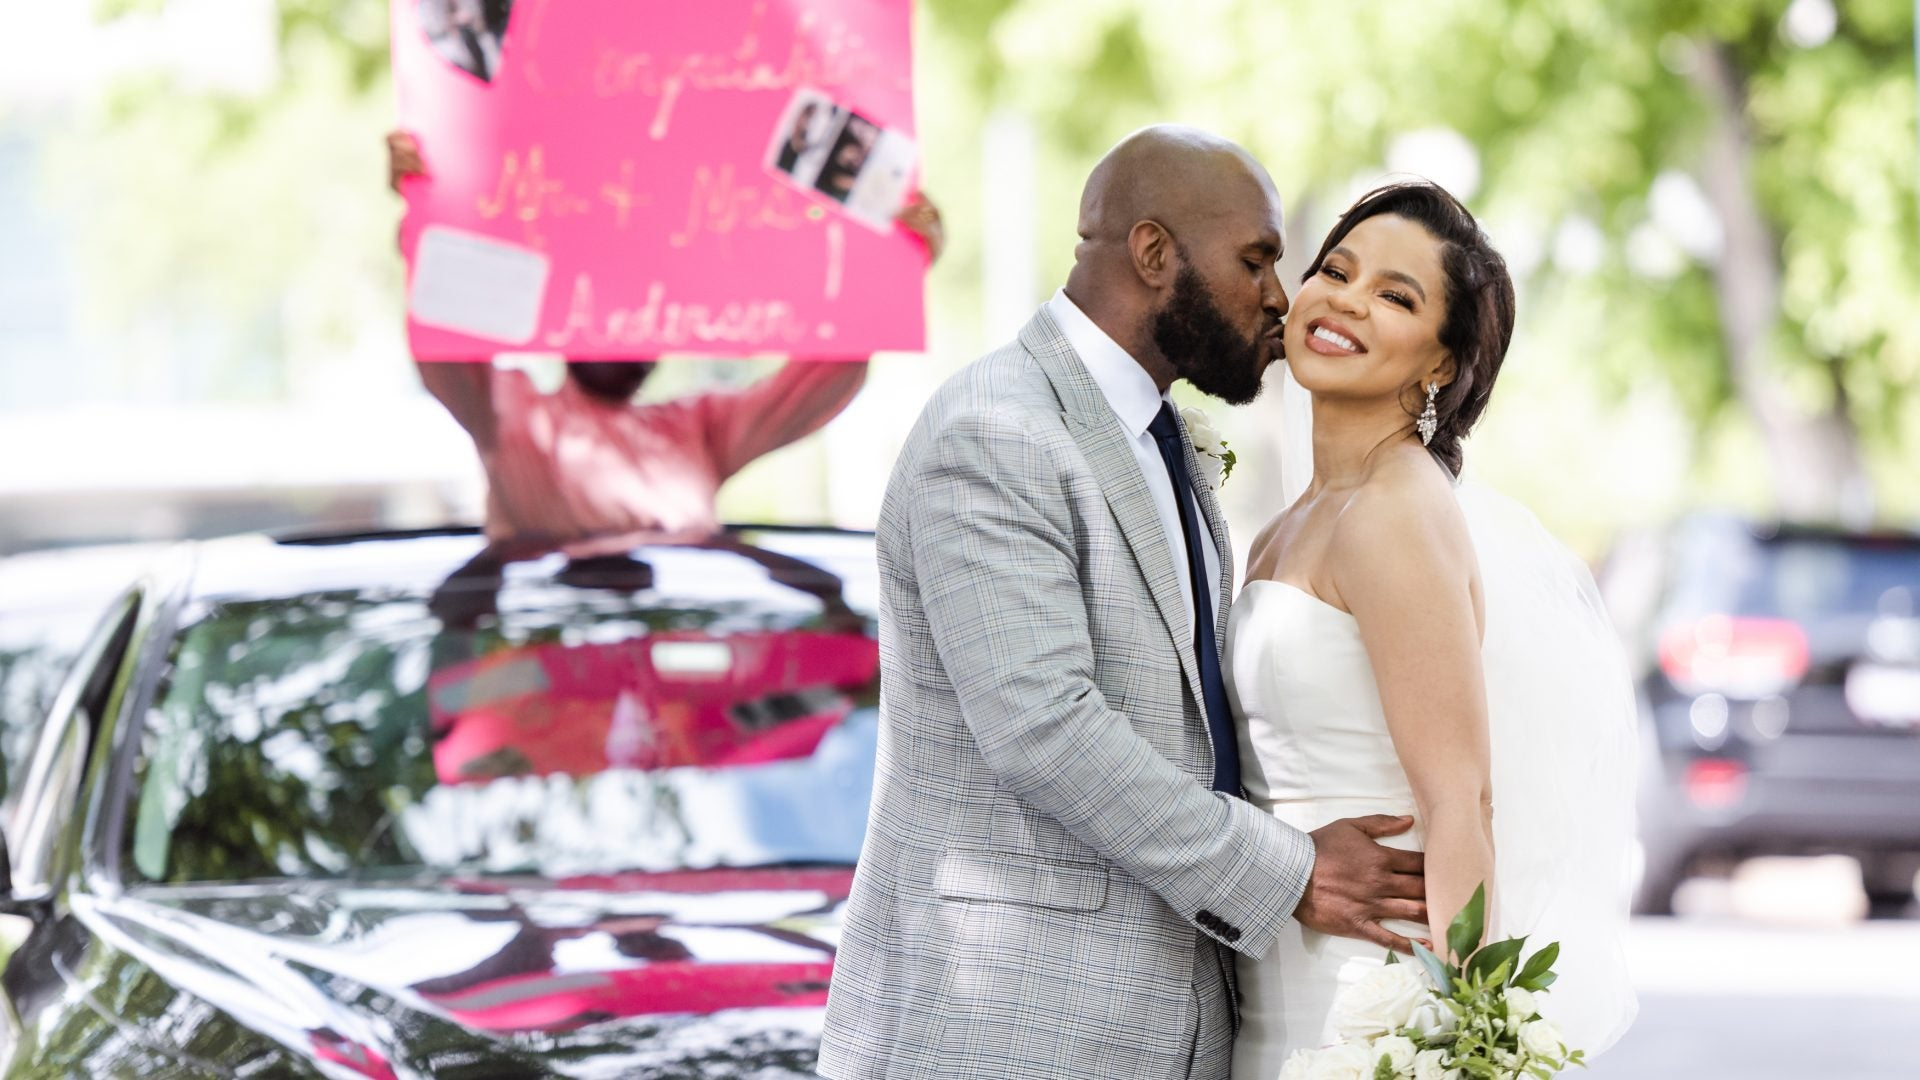 Bridal Bliss: Lauren and Warren's Social Distancing Wedding In Washington D.C.